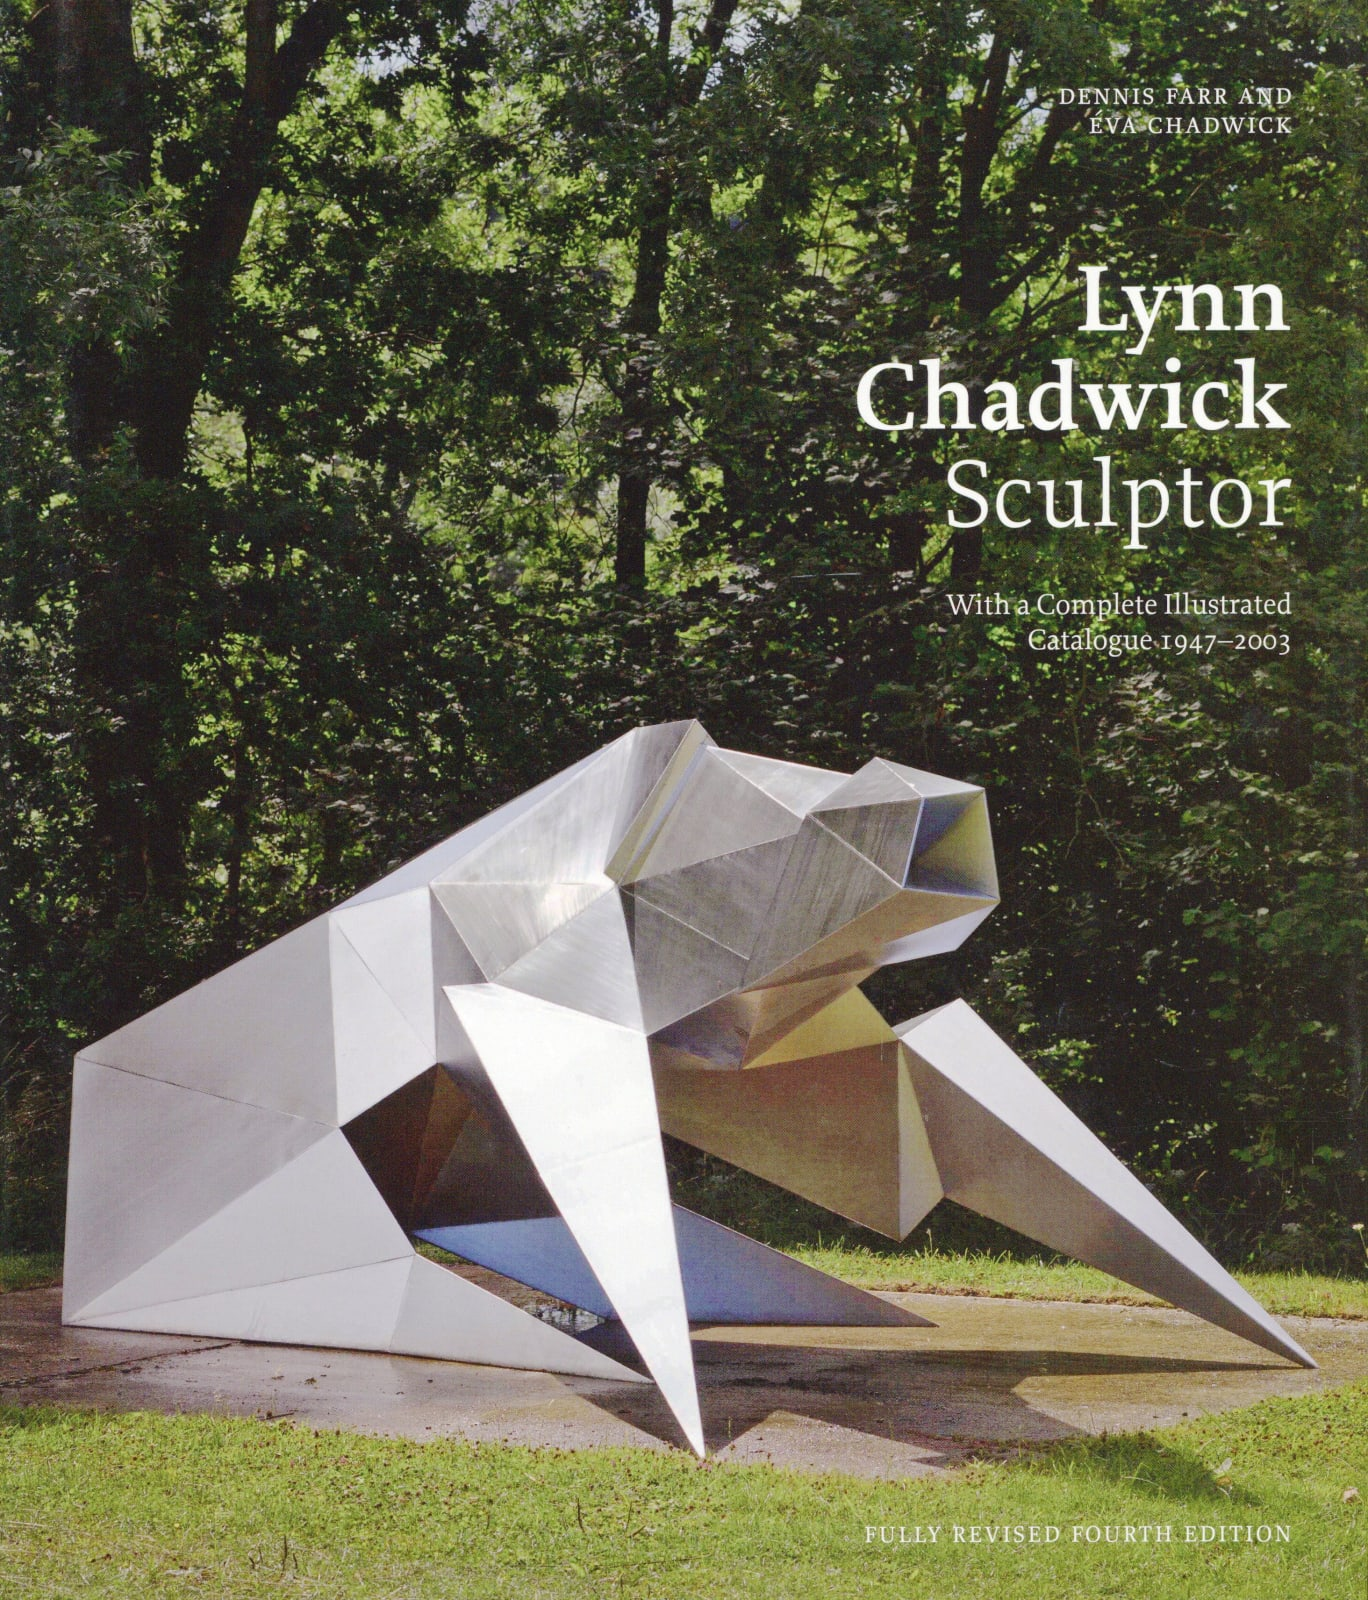 Lynn Chadwick Sculptor With a complete Illustrated Catalogue 1947-2003